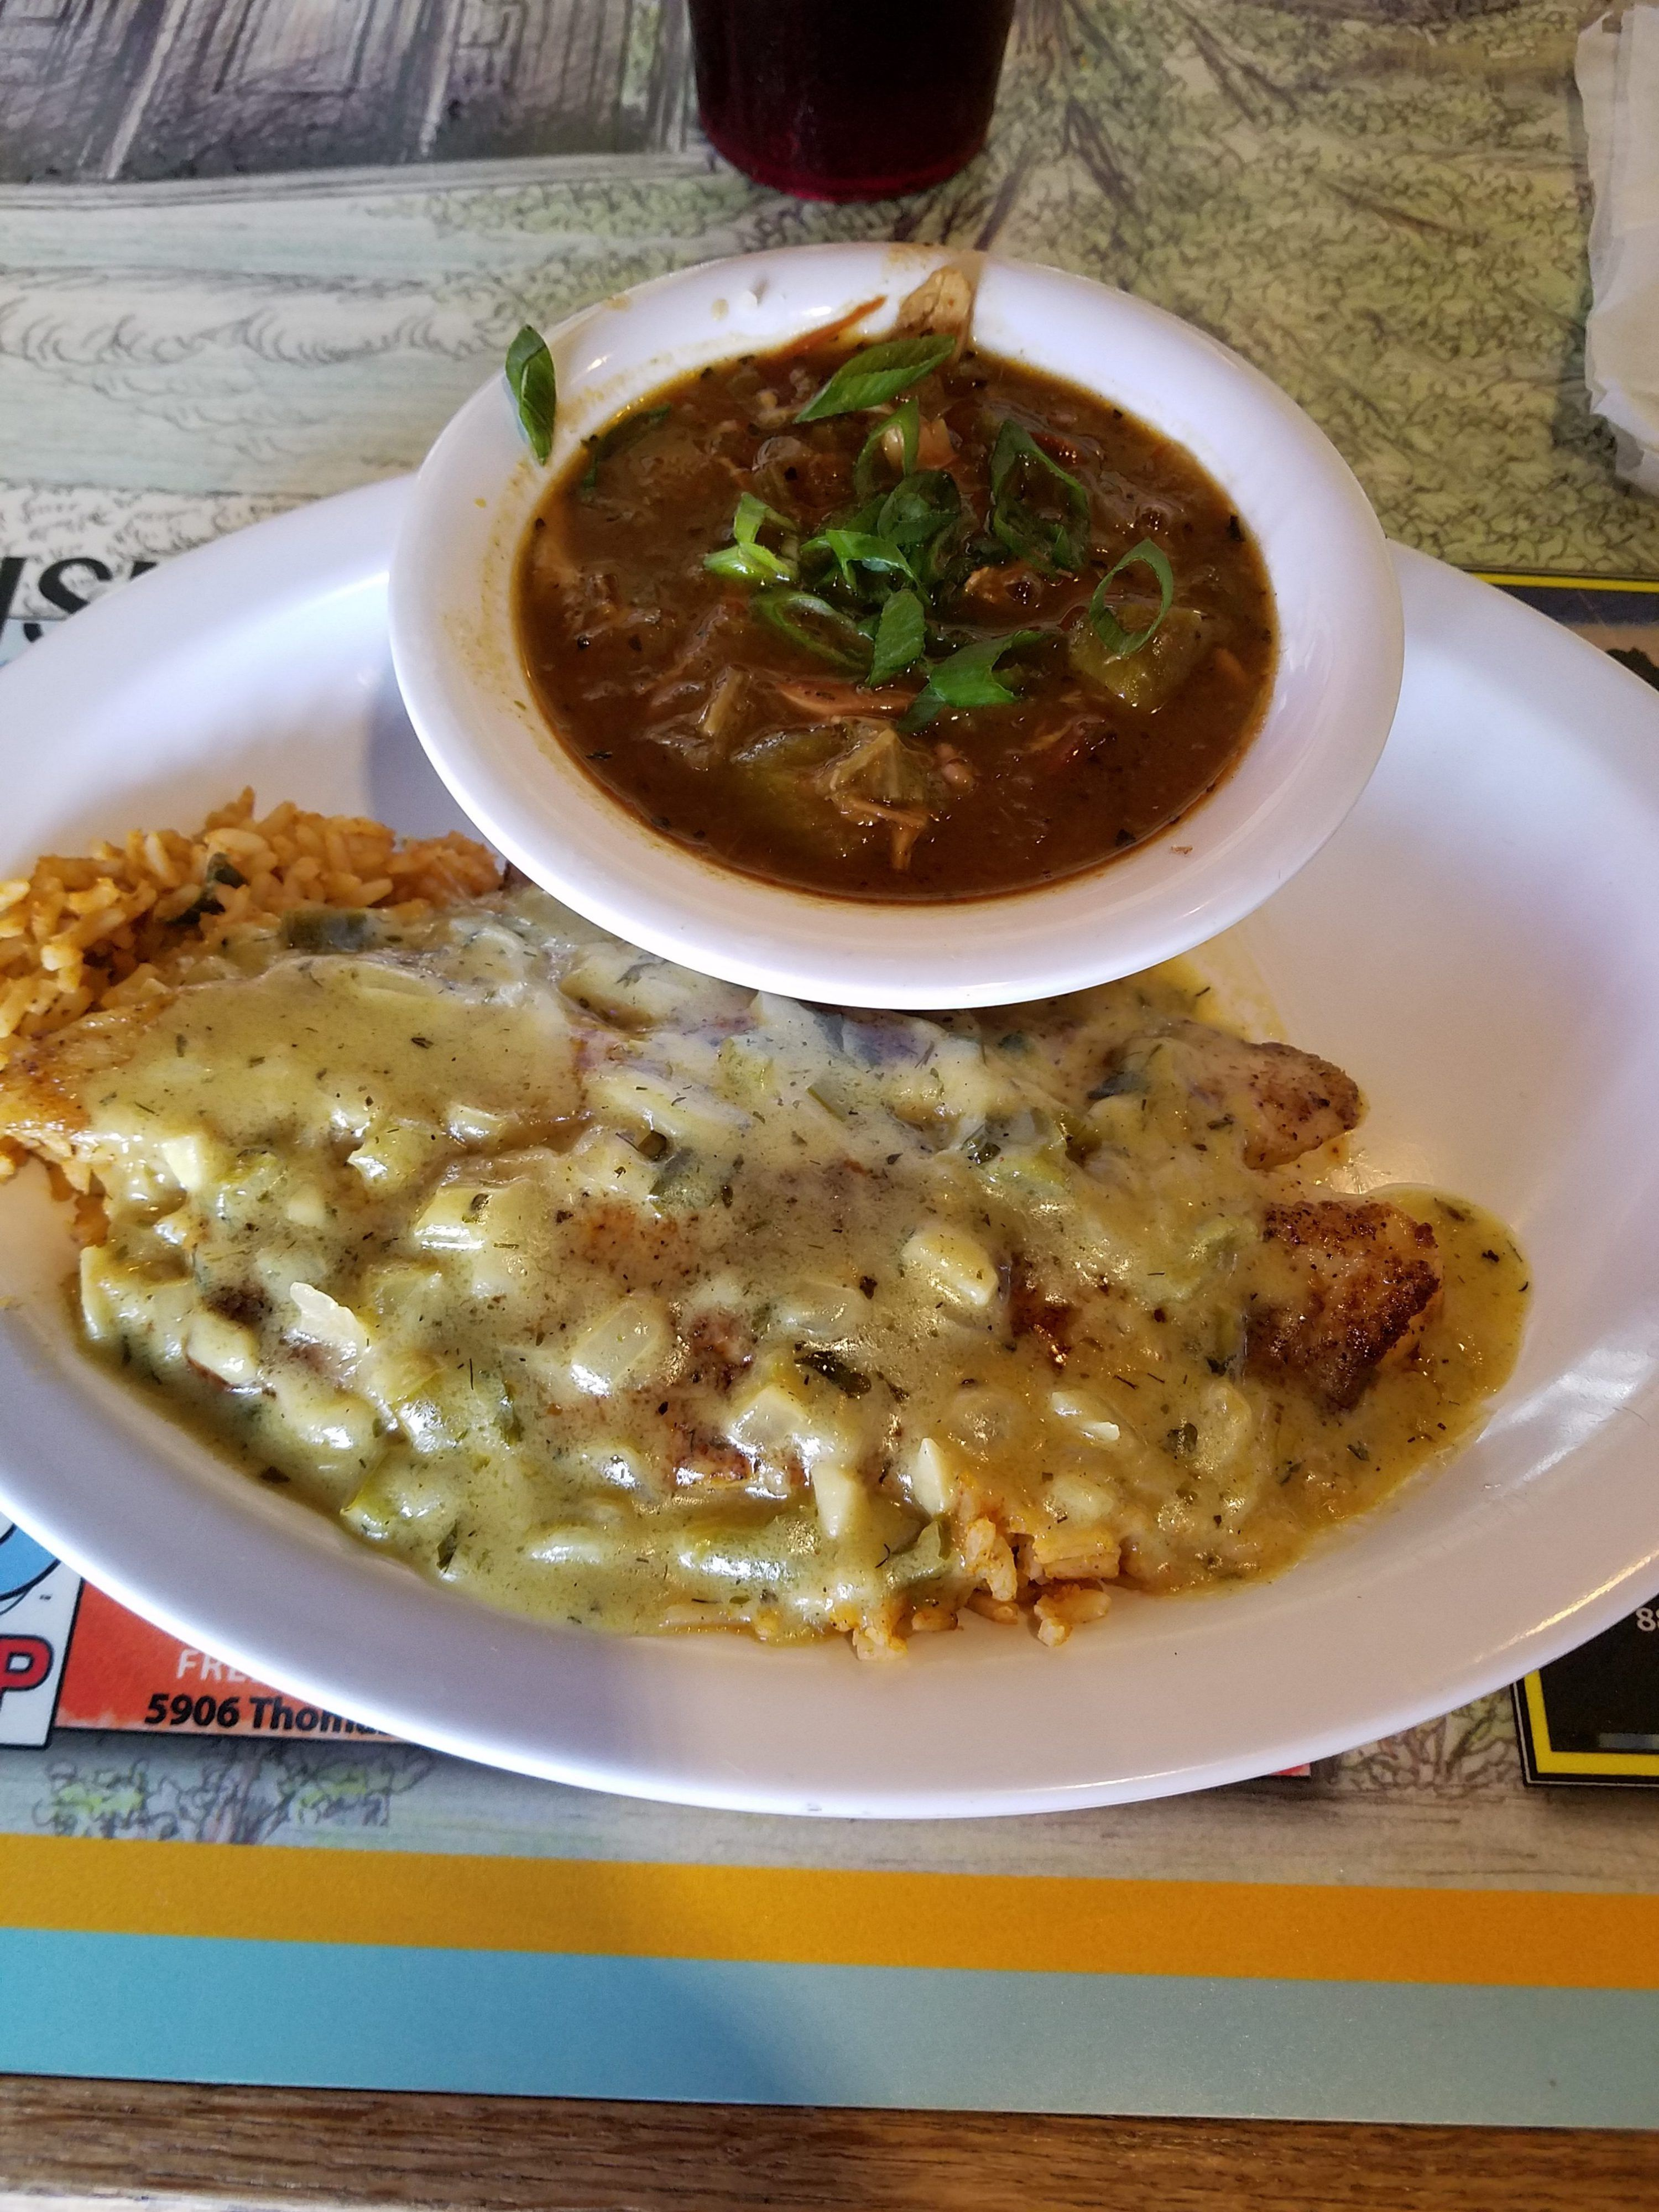 How To Get The Best Cajun Food At Dat Place